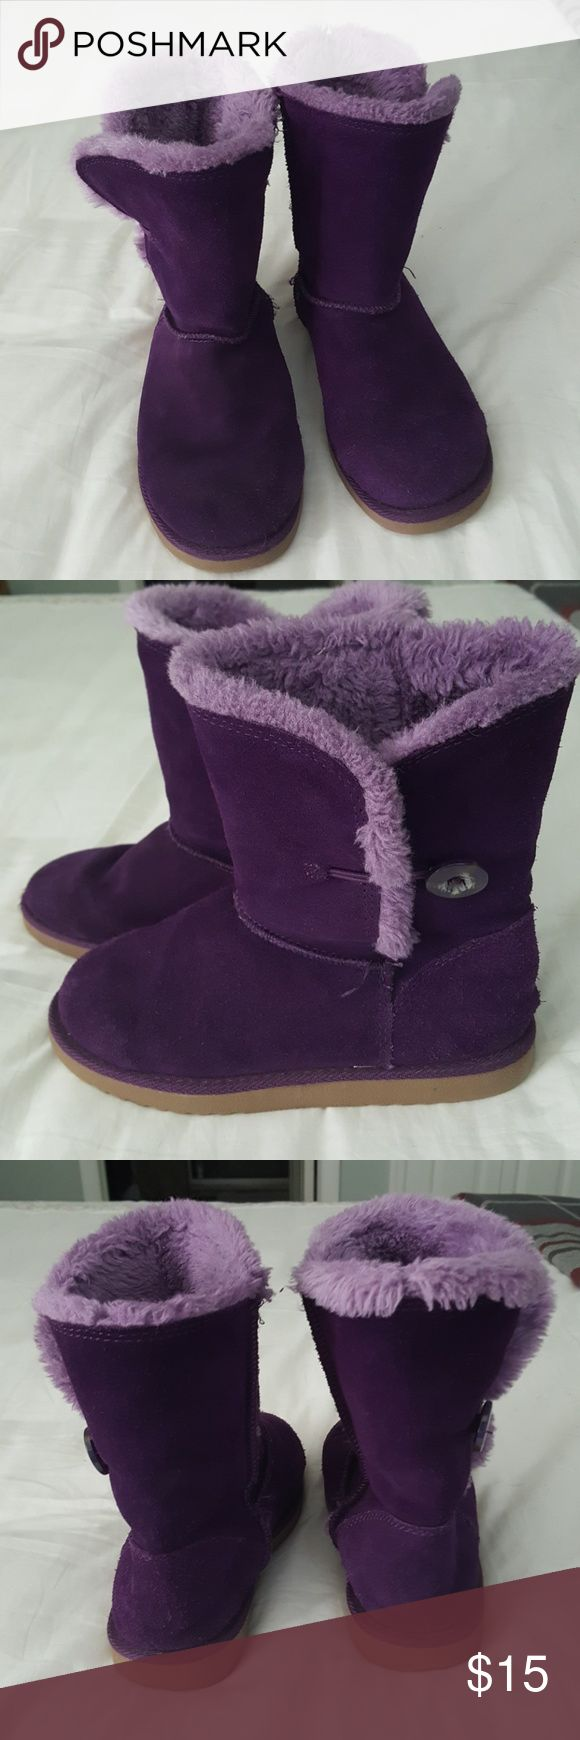 Women's suede booties Size 6 purple suede ankle booties with faux fur lining by Xhilaration. Sold at Target. Great used condition⛄❄🌬 Xhilaration Shoes Winter & Rain Boots